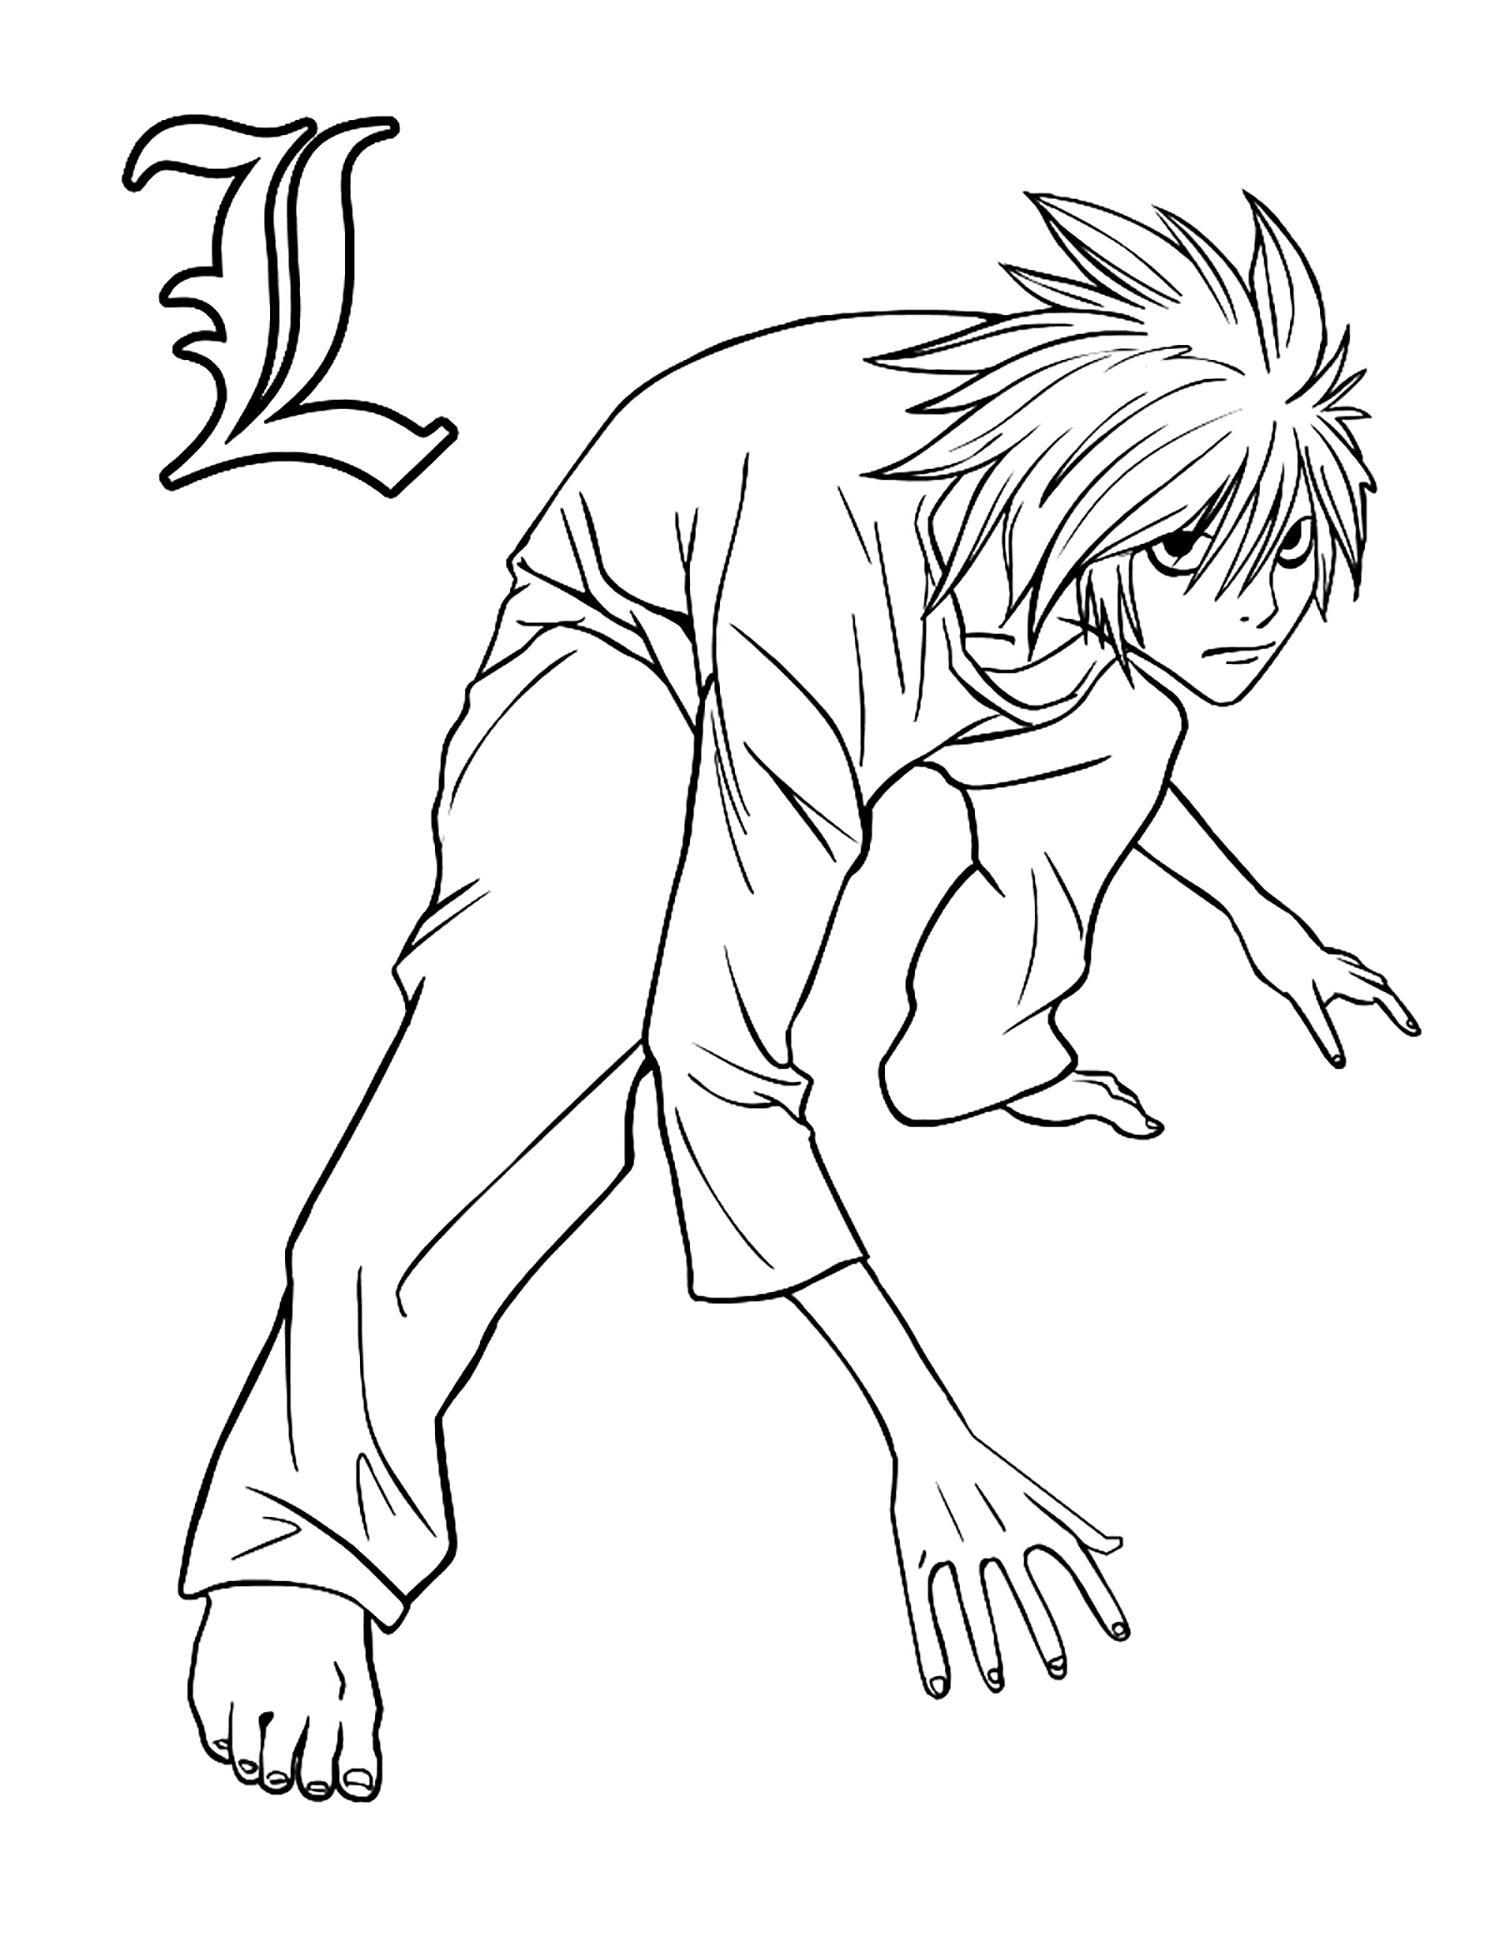 Funny free Death note coloring page to print and color